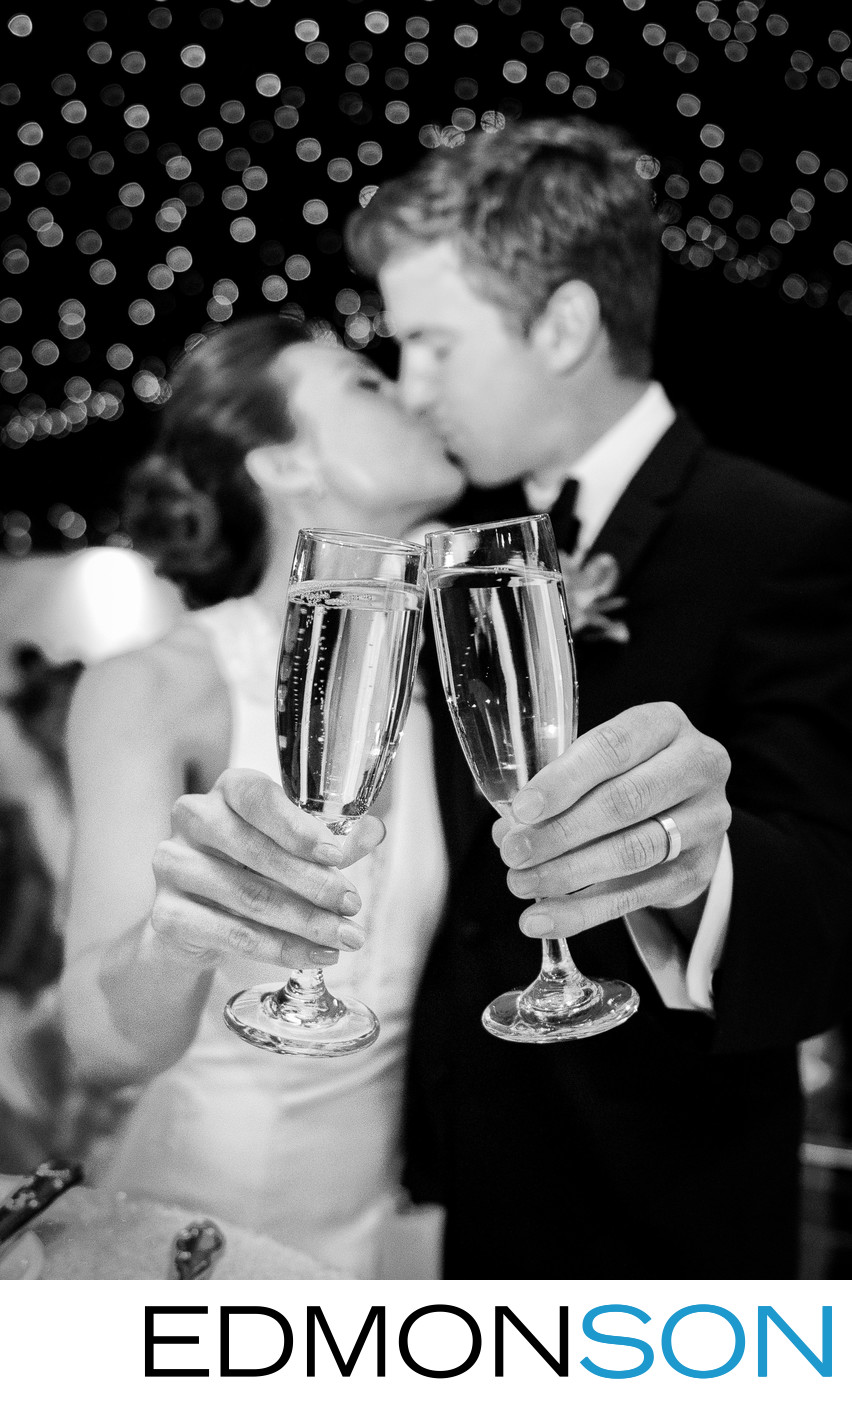 Wedding Toast For Tulsa Bride & Groom